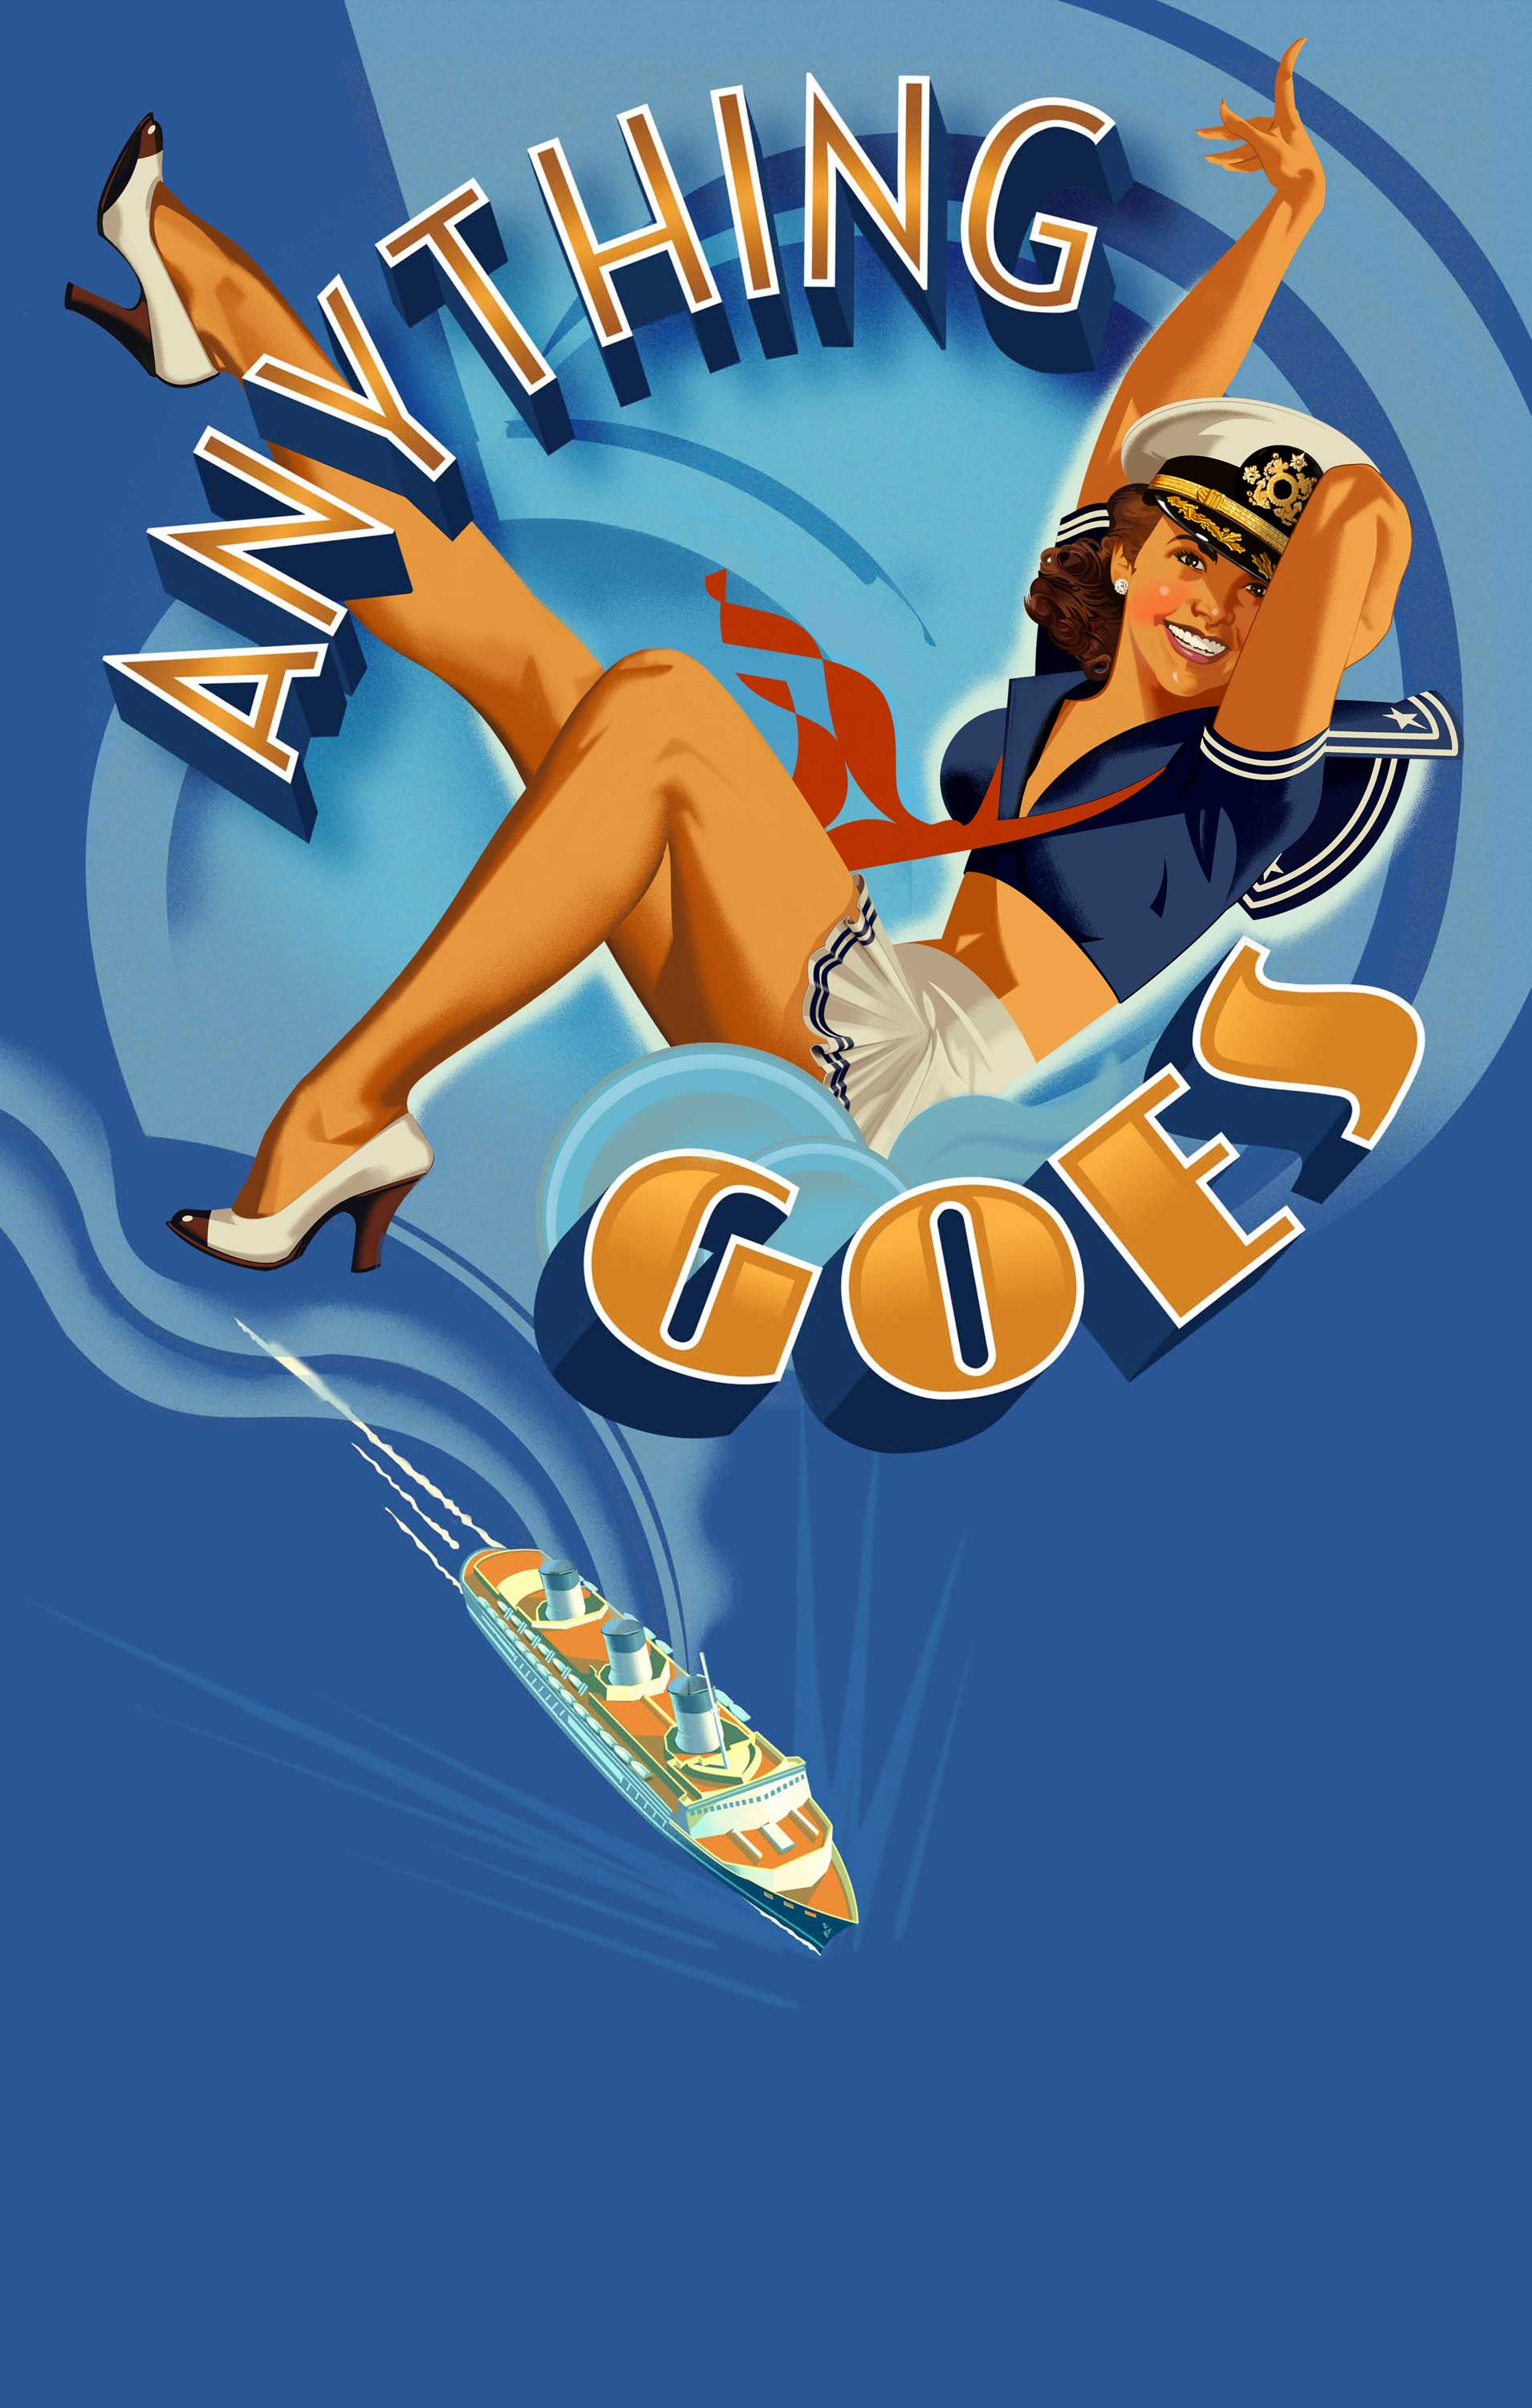 Robert Rodriguez Illustration anything goes sailor girl